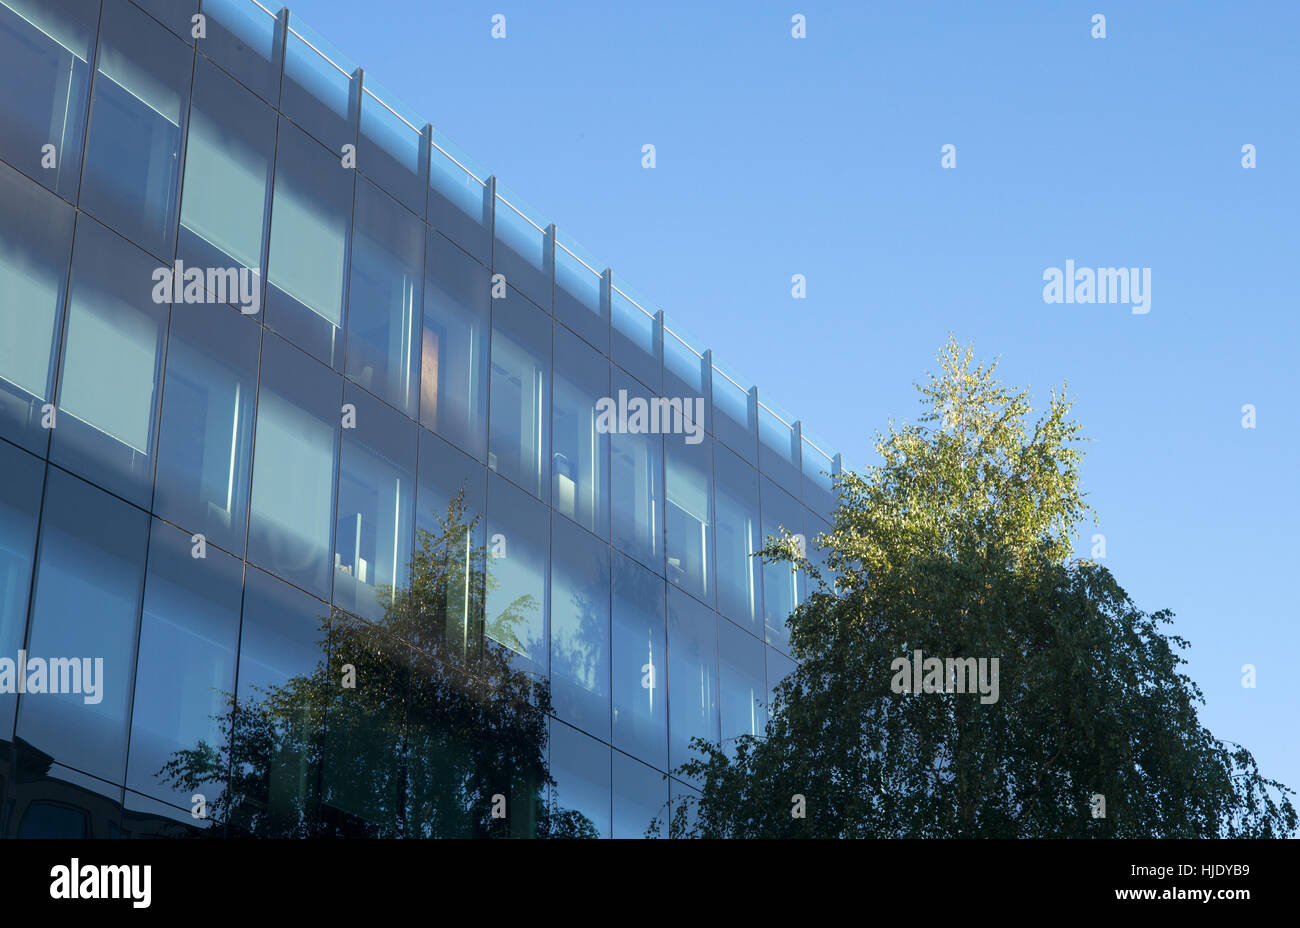 Leafy tree and blue sky reflected in glass walled building Stock Photo